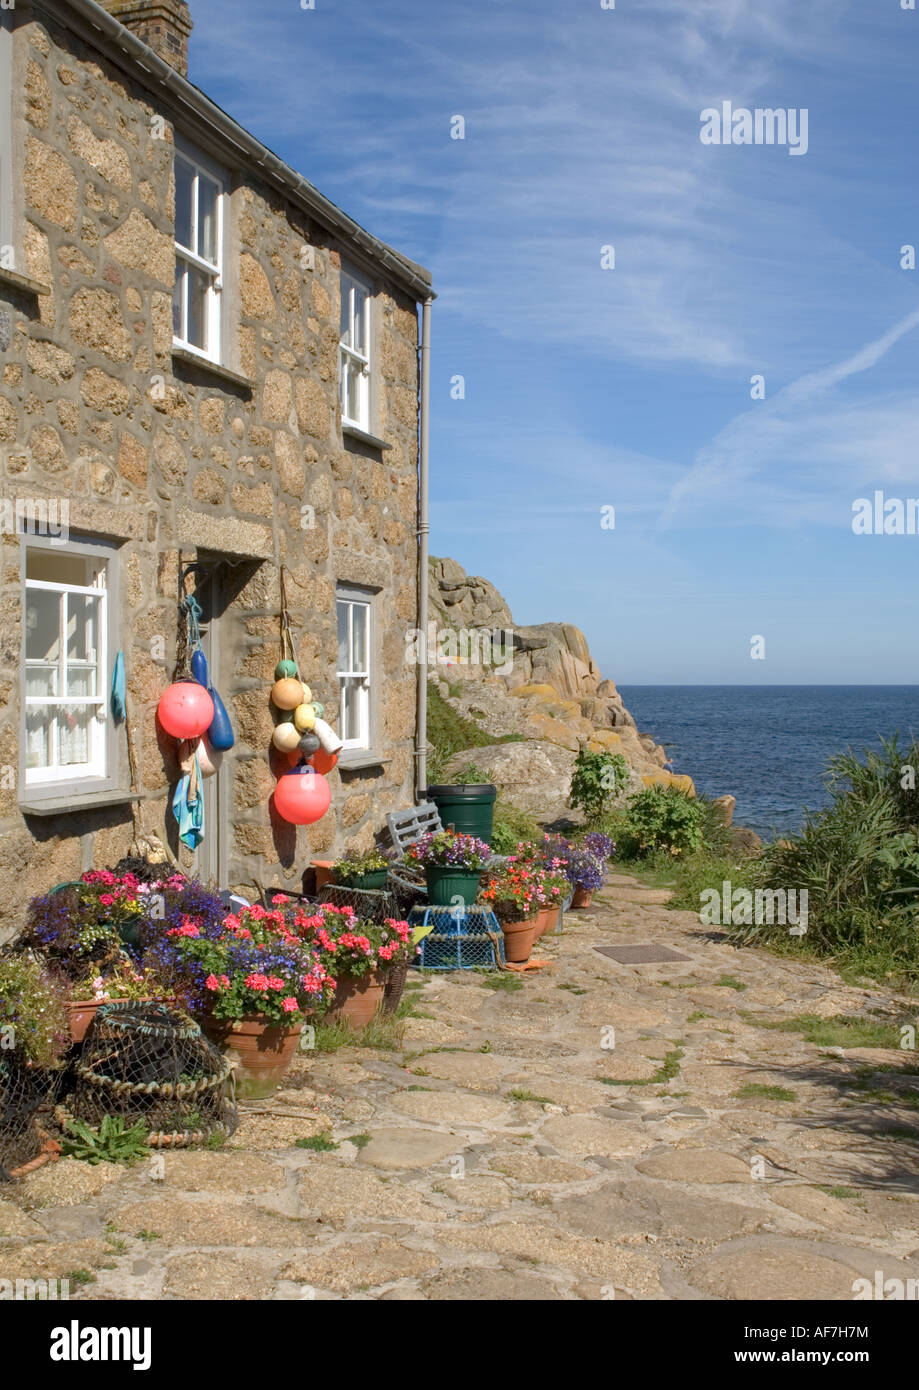 Fisherman 39 s cottage penberth cove cornwall stock photo royalty free image 13857511 alamy - The fishermans cottage ...